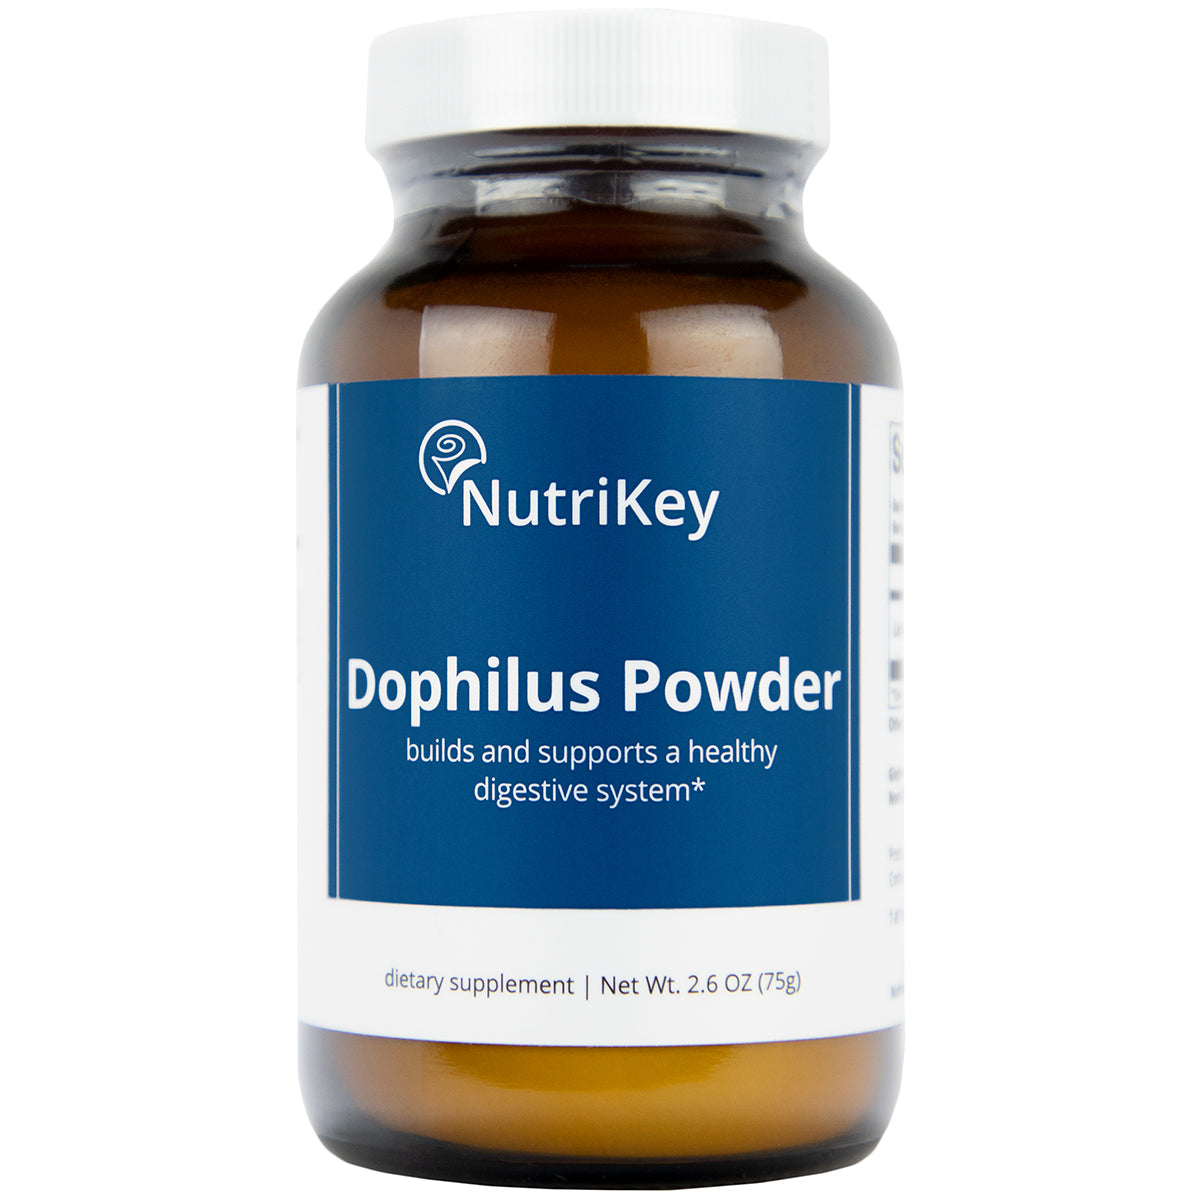 Dophilus Powder, 2.6 oz